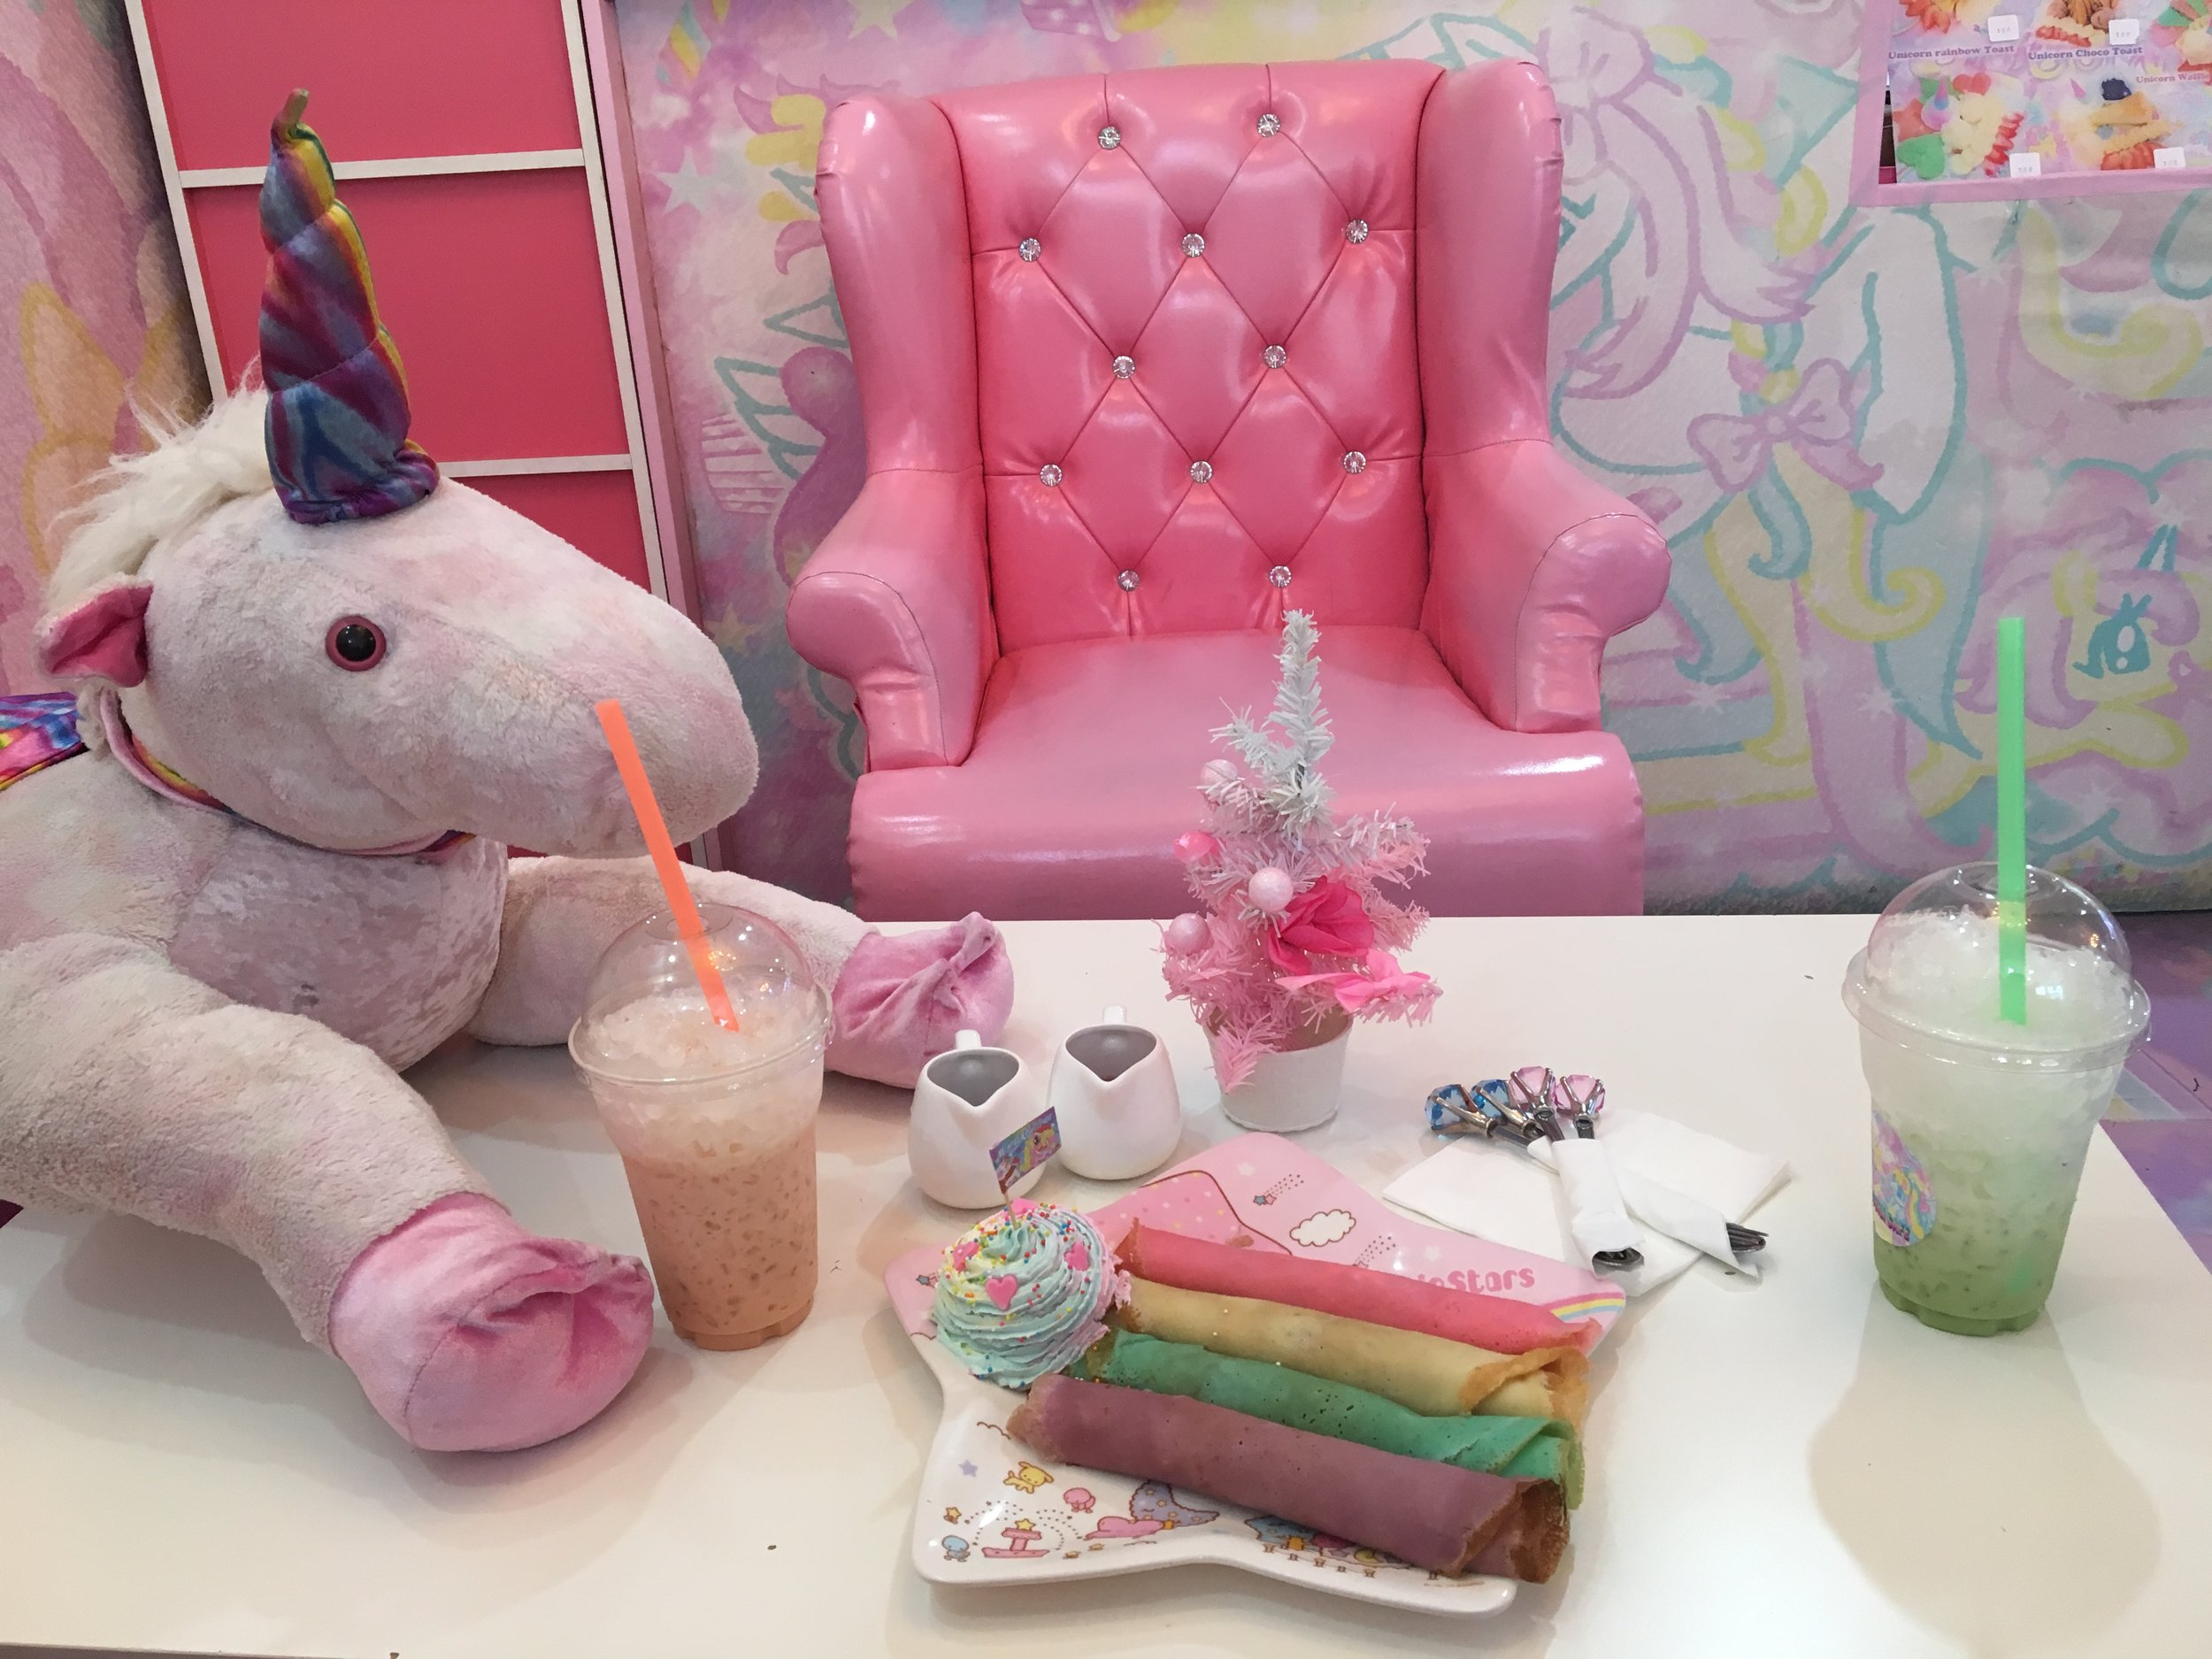 Culinary cuteness overload at Unicorn Café